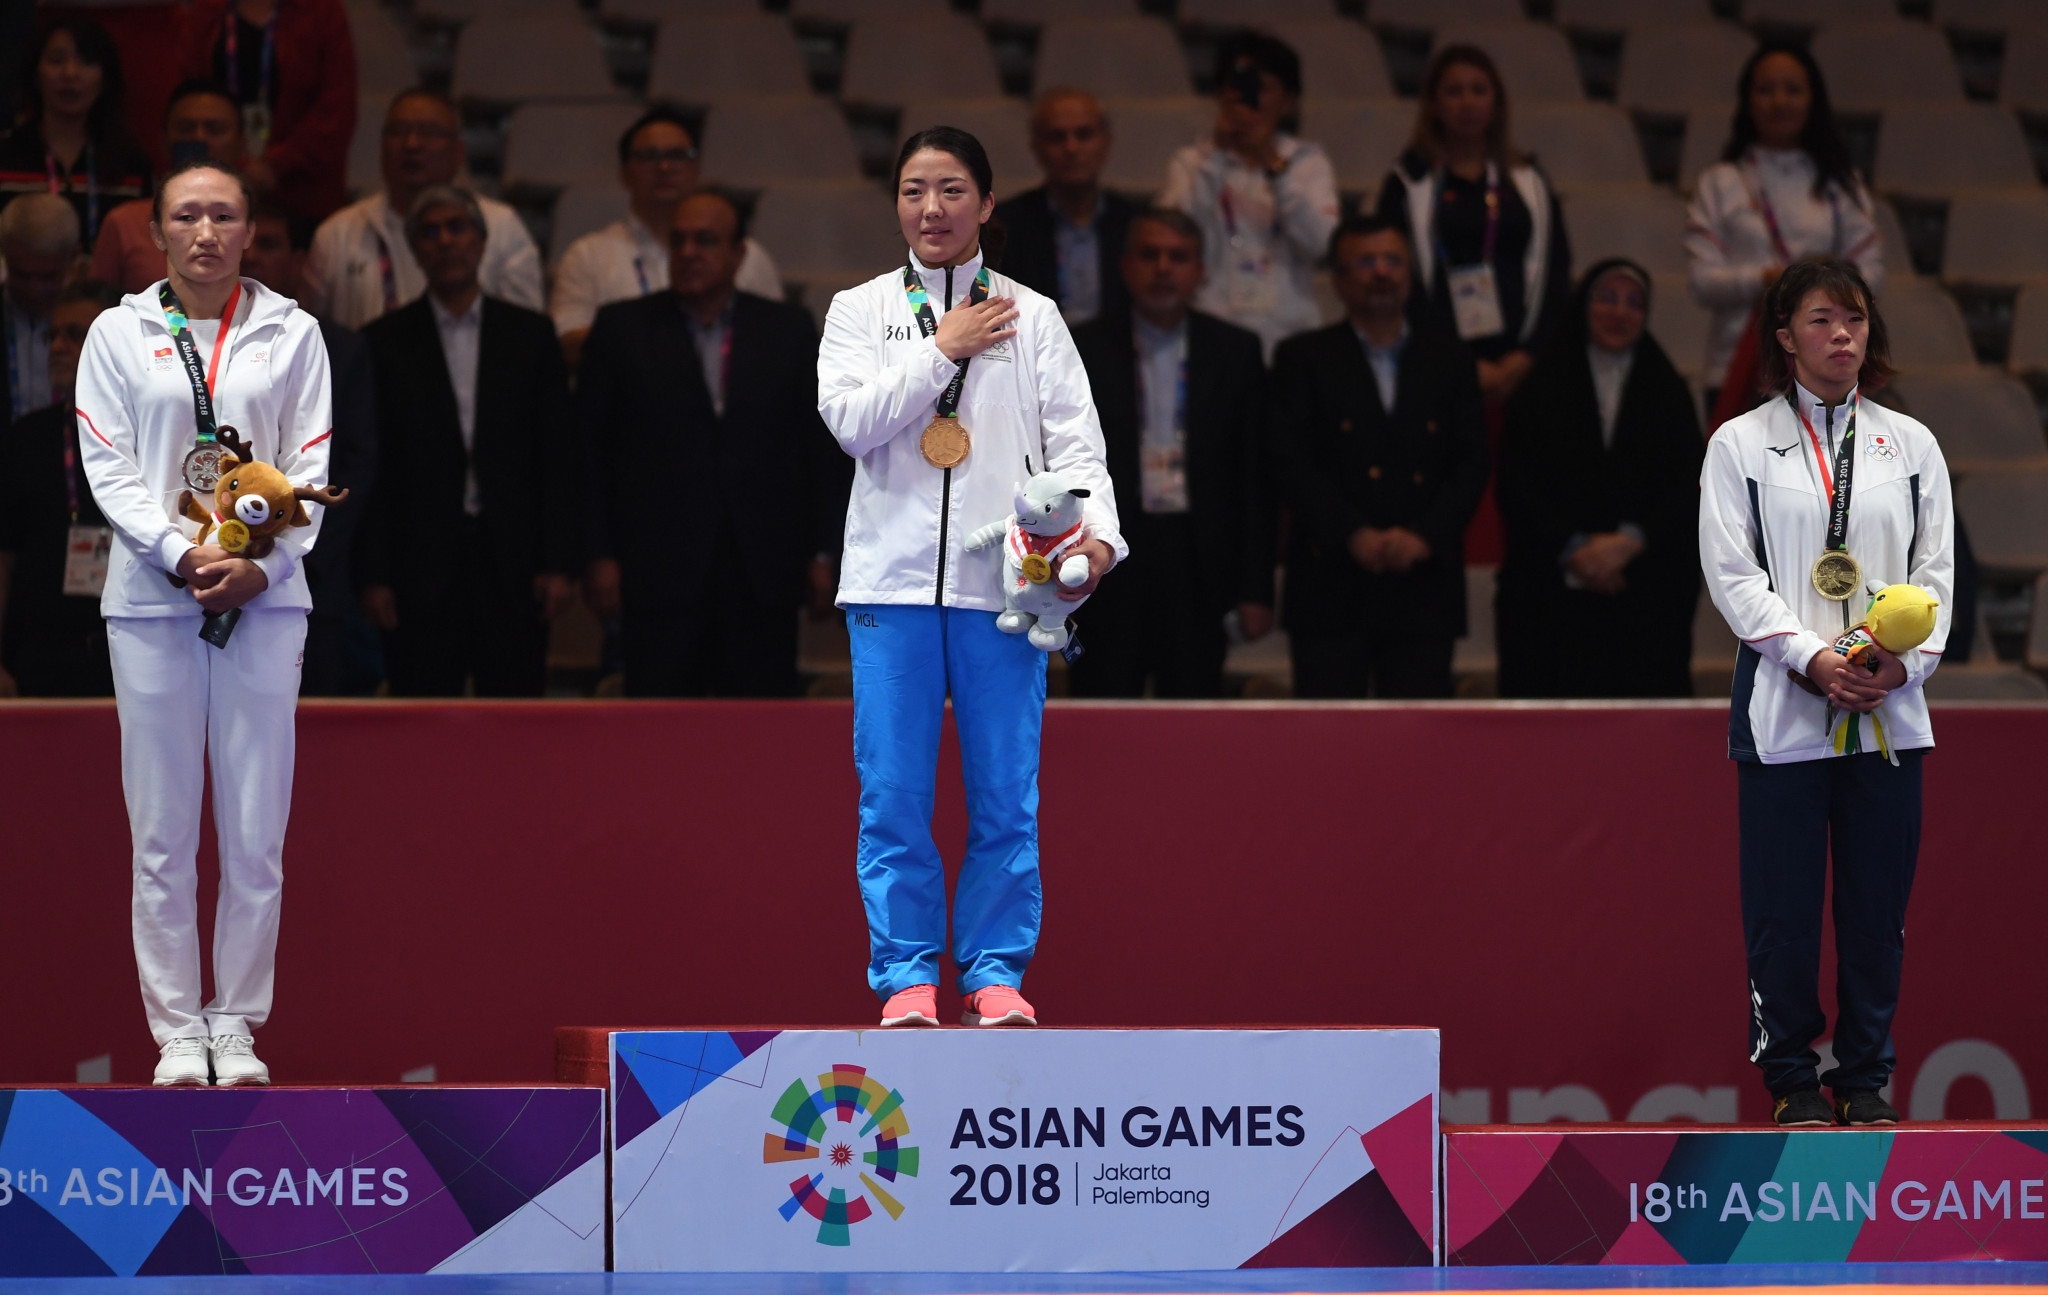 Reigning world champion stripped of Asian Games wrestling gold medal for doping